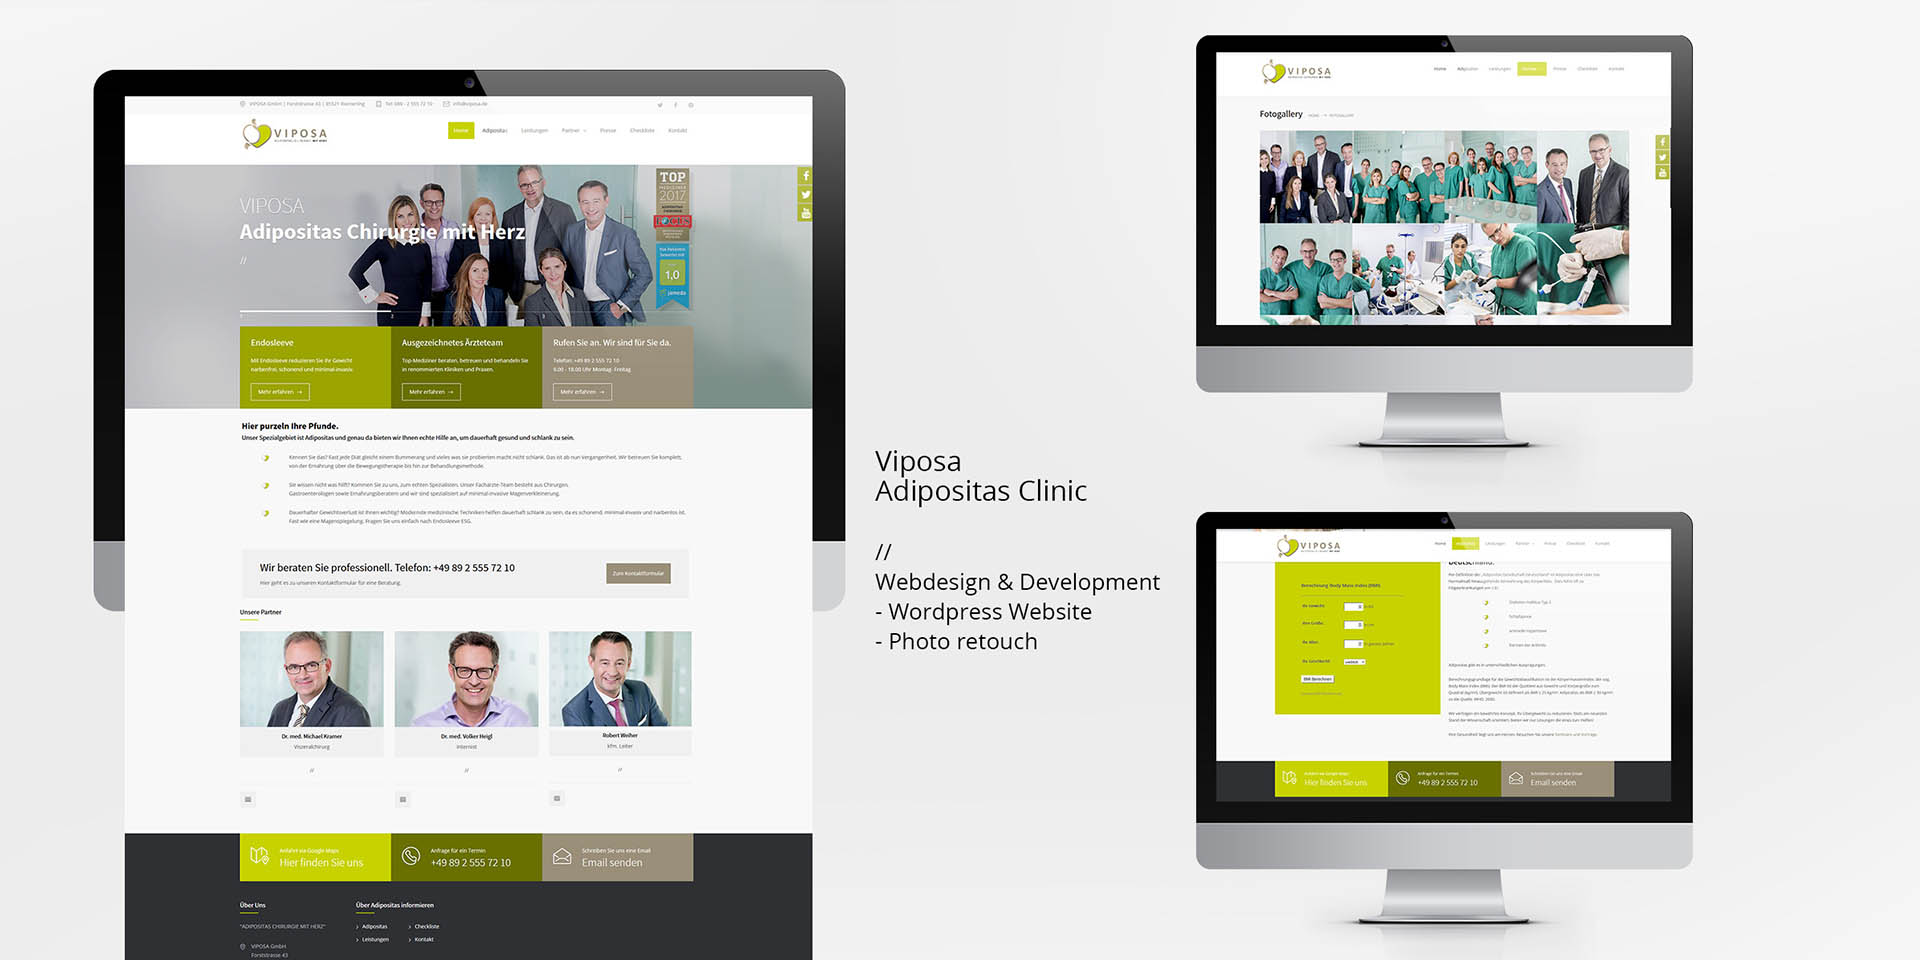 webdesign logo ci corporate identitiy stationery corporate design viposa